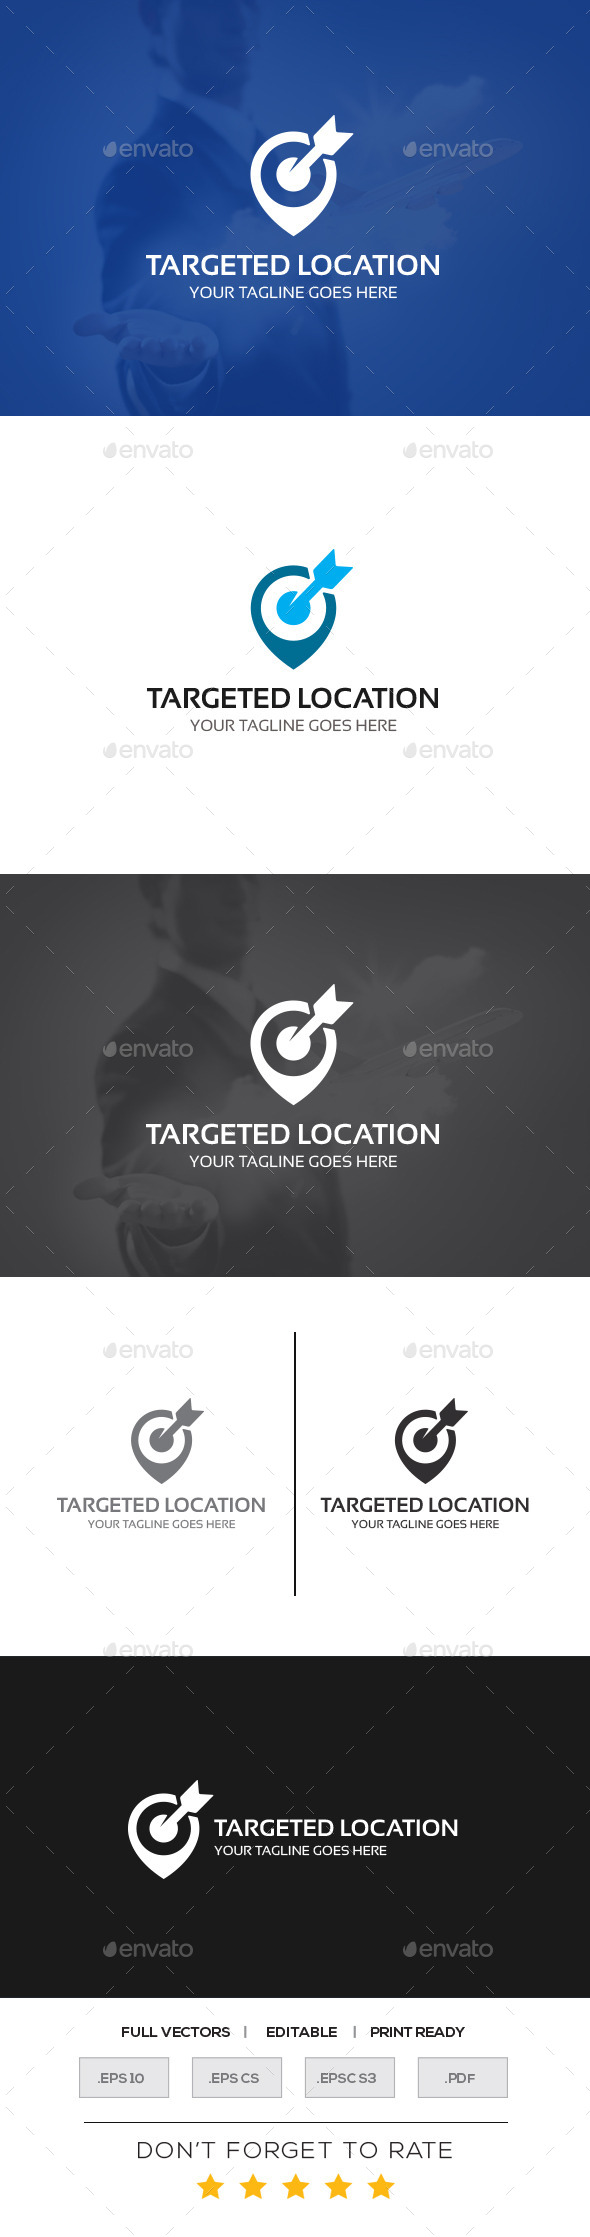 GraphicRiver Targeted Location Logo Template 10950112